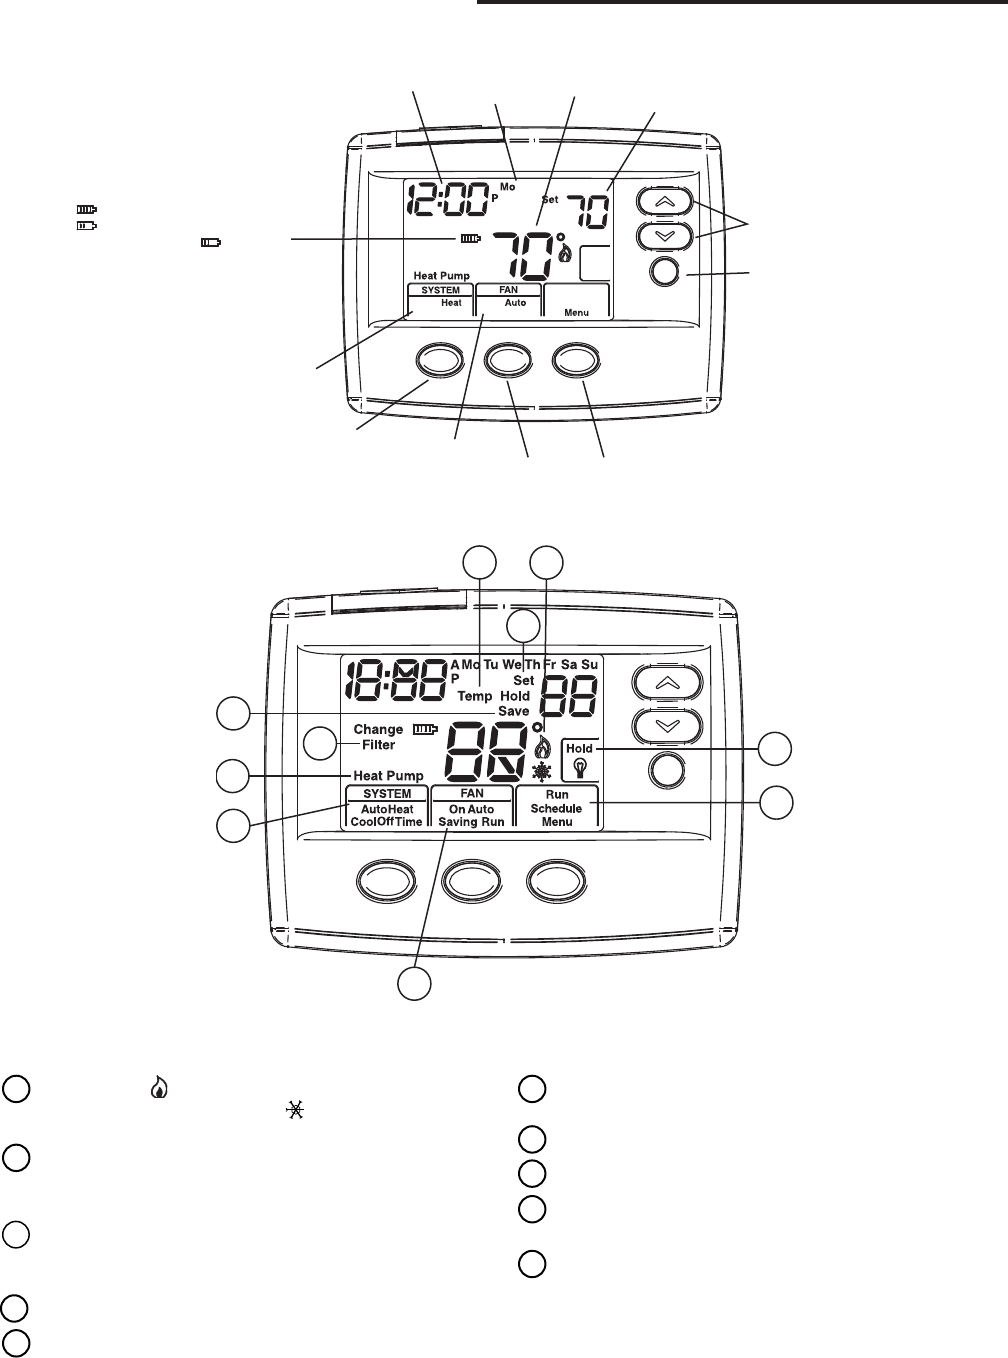 Emerson Guitar Wiring Diagram together with Emerson Guitar Kit Wiring Diagram likewise 15949 together with Ct Cabi  Wiring Diagram additionally Emerson Ice Maker Schematic. on emerson motor technologies wiring diagrams